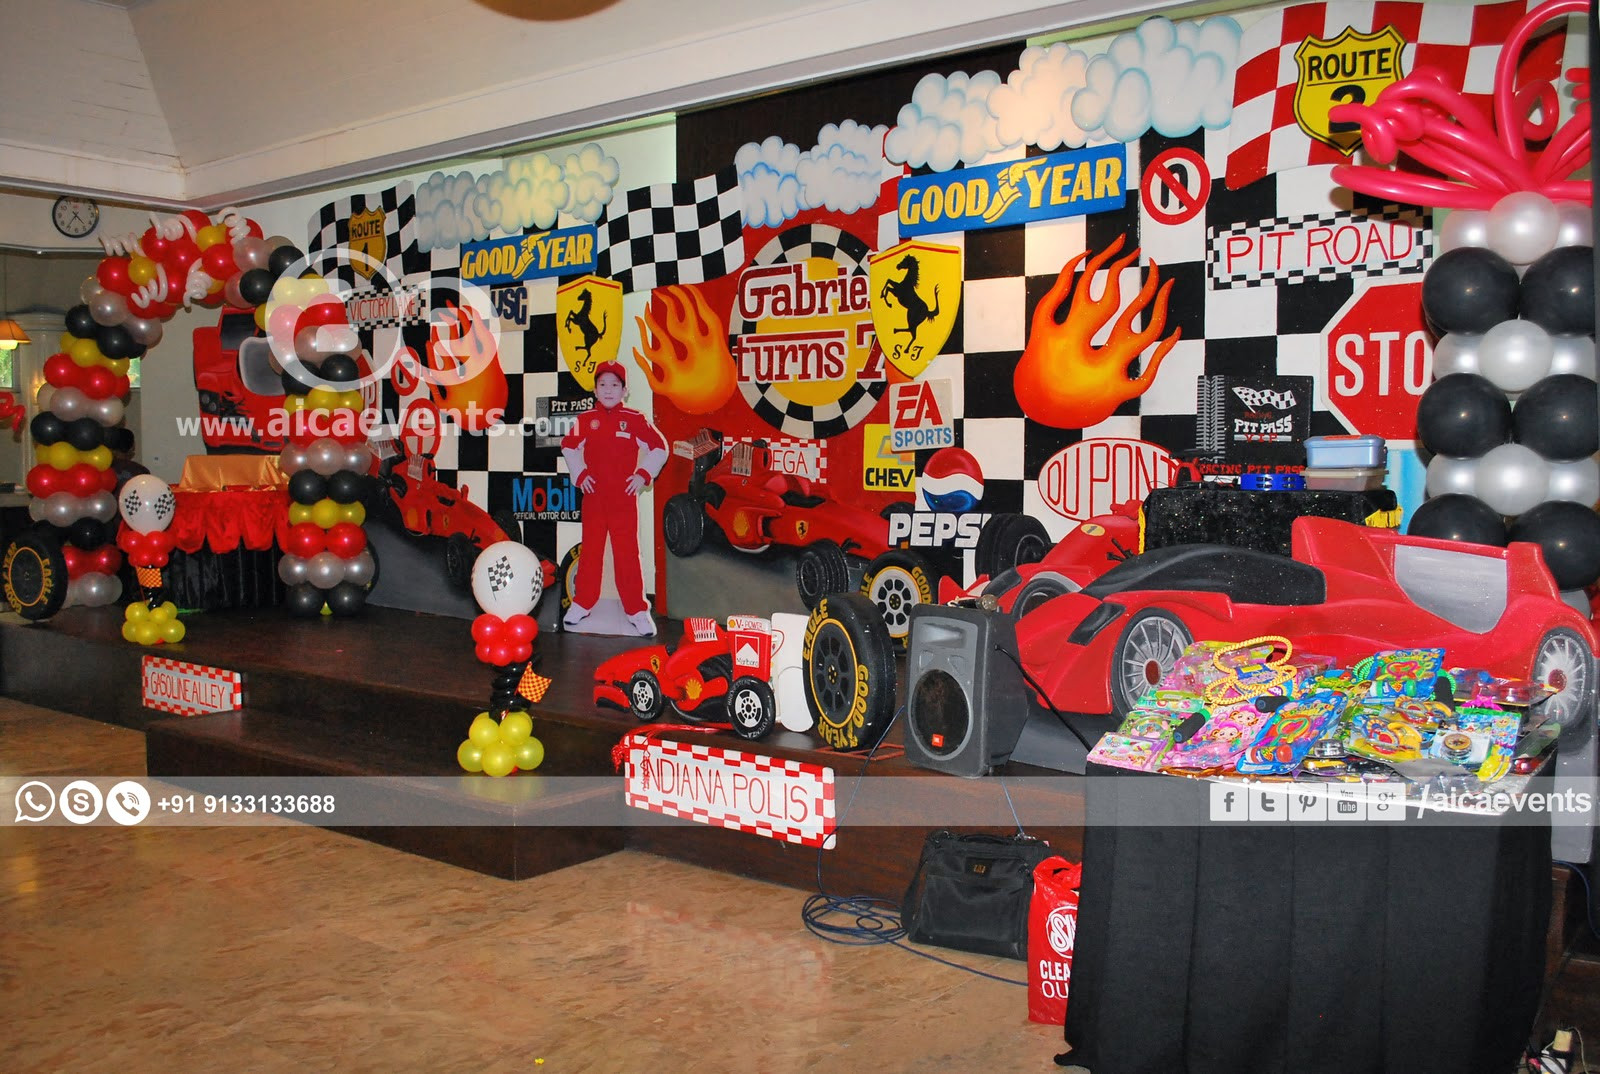 Best ideas about Birthday Car Decorations . Save or Pin aicaevents Car Themed Birthday party Now.